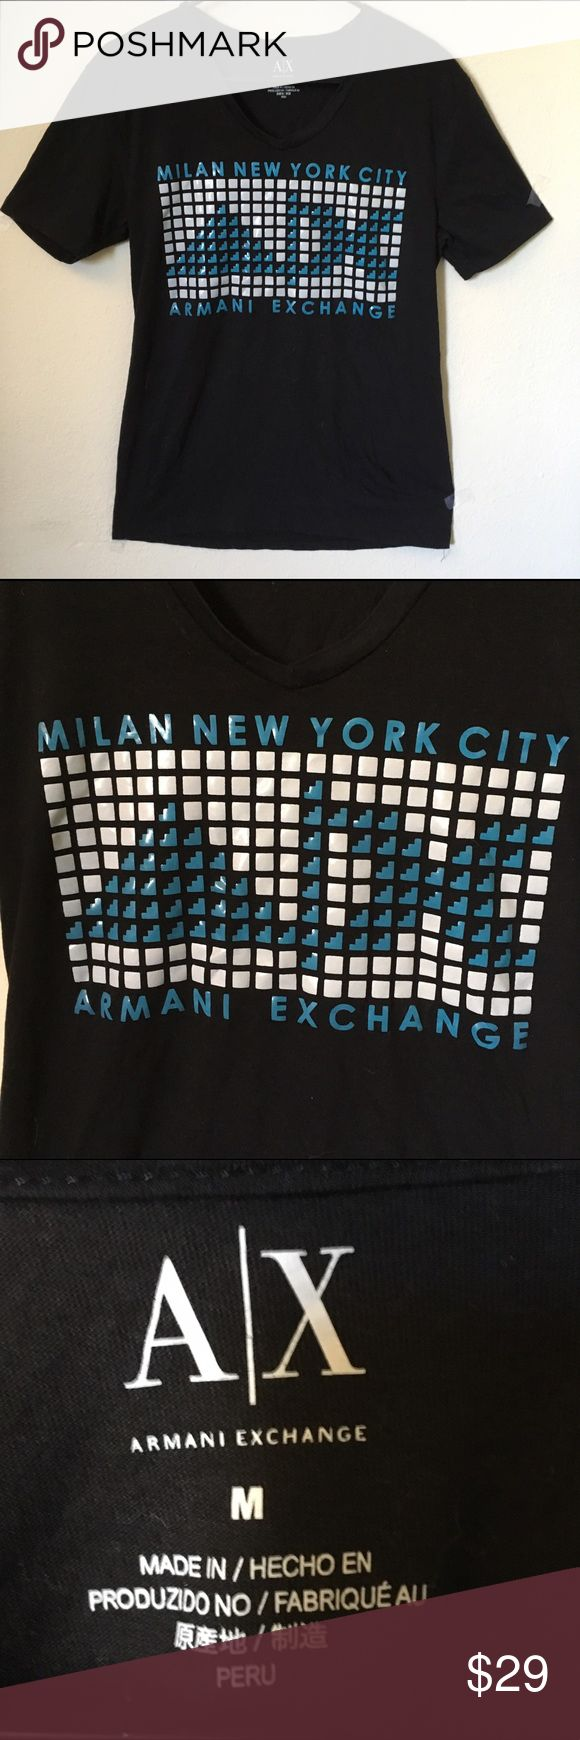 Armani Exchange t shirt Black with blue and white detailing.  In excellent condition with no flaws or damage A/X Armani Exchange Shirts Tees - Short Sleeve